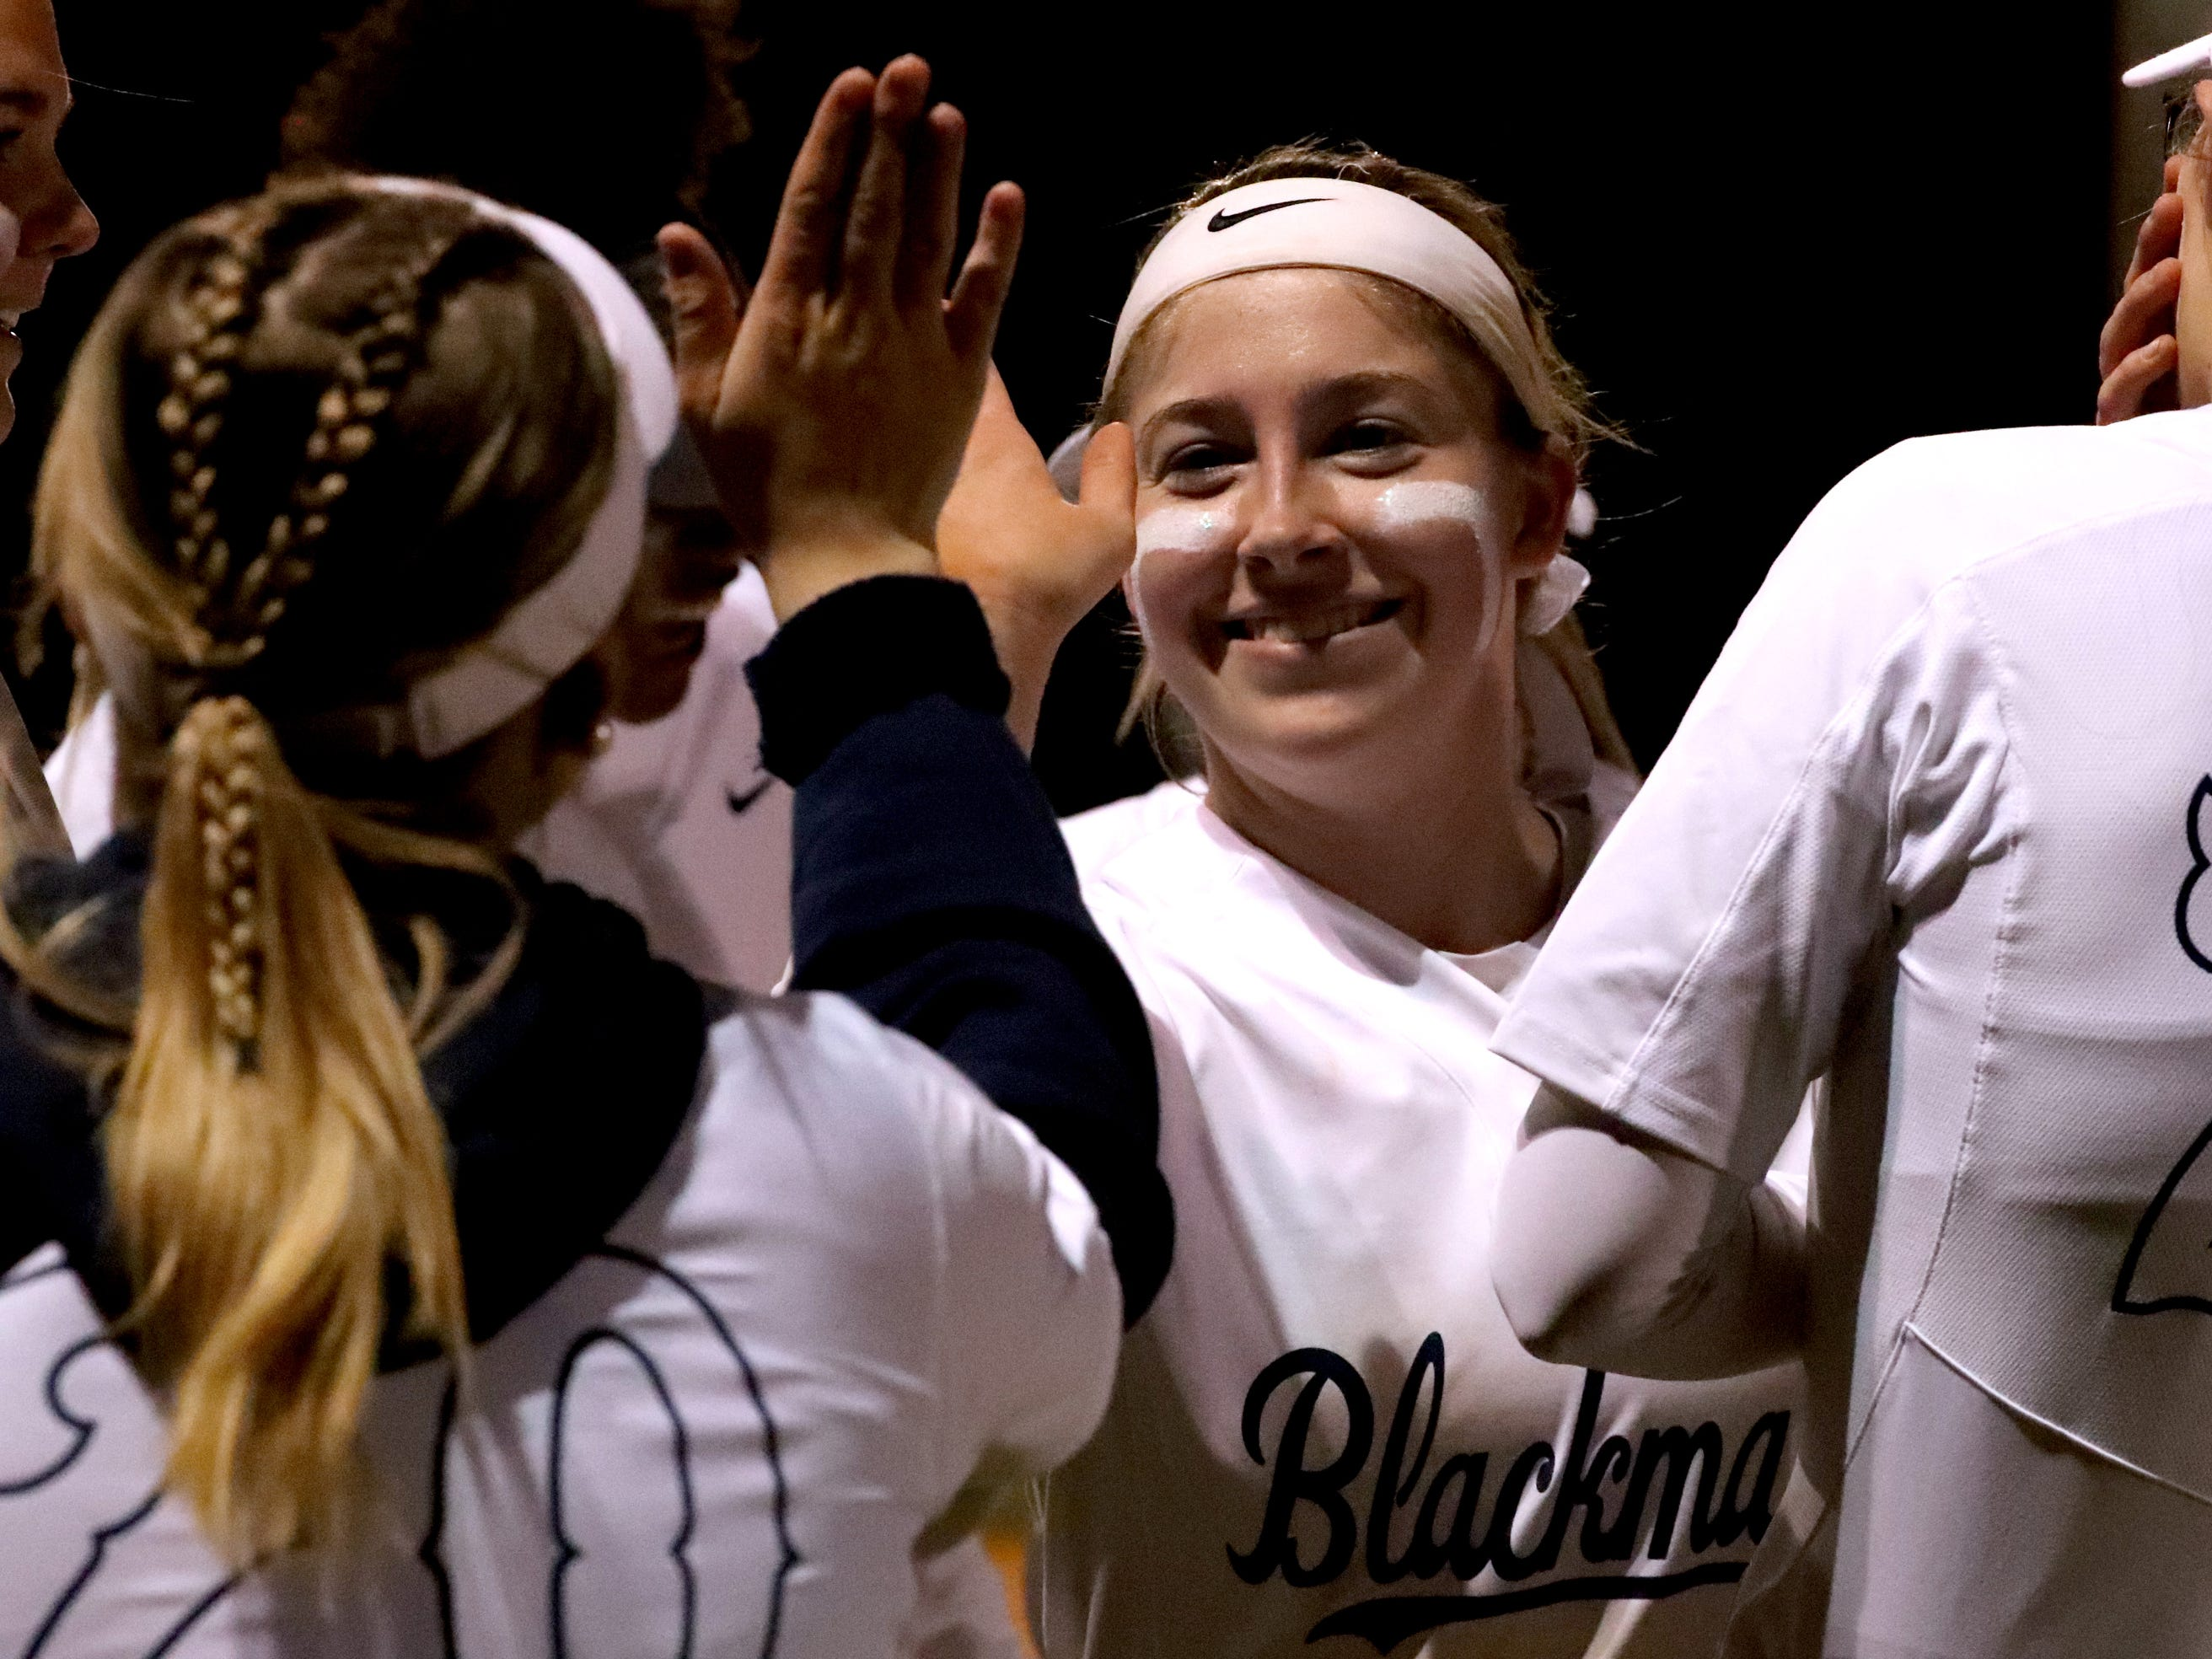 Blackman's Ashlynn Hamby (25) and Blackman's Kaylyn Tarpley (20) give each other a high-five before an inning during the game against Siegel, on Monday, March 18, 2019, at Blackman.